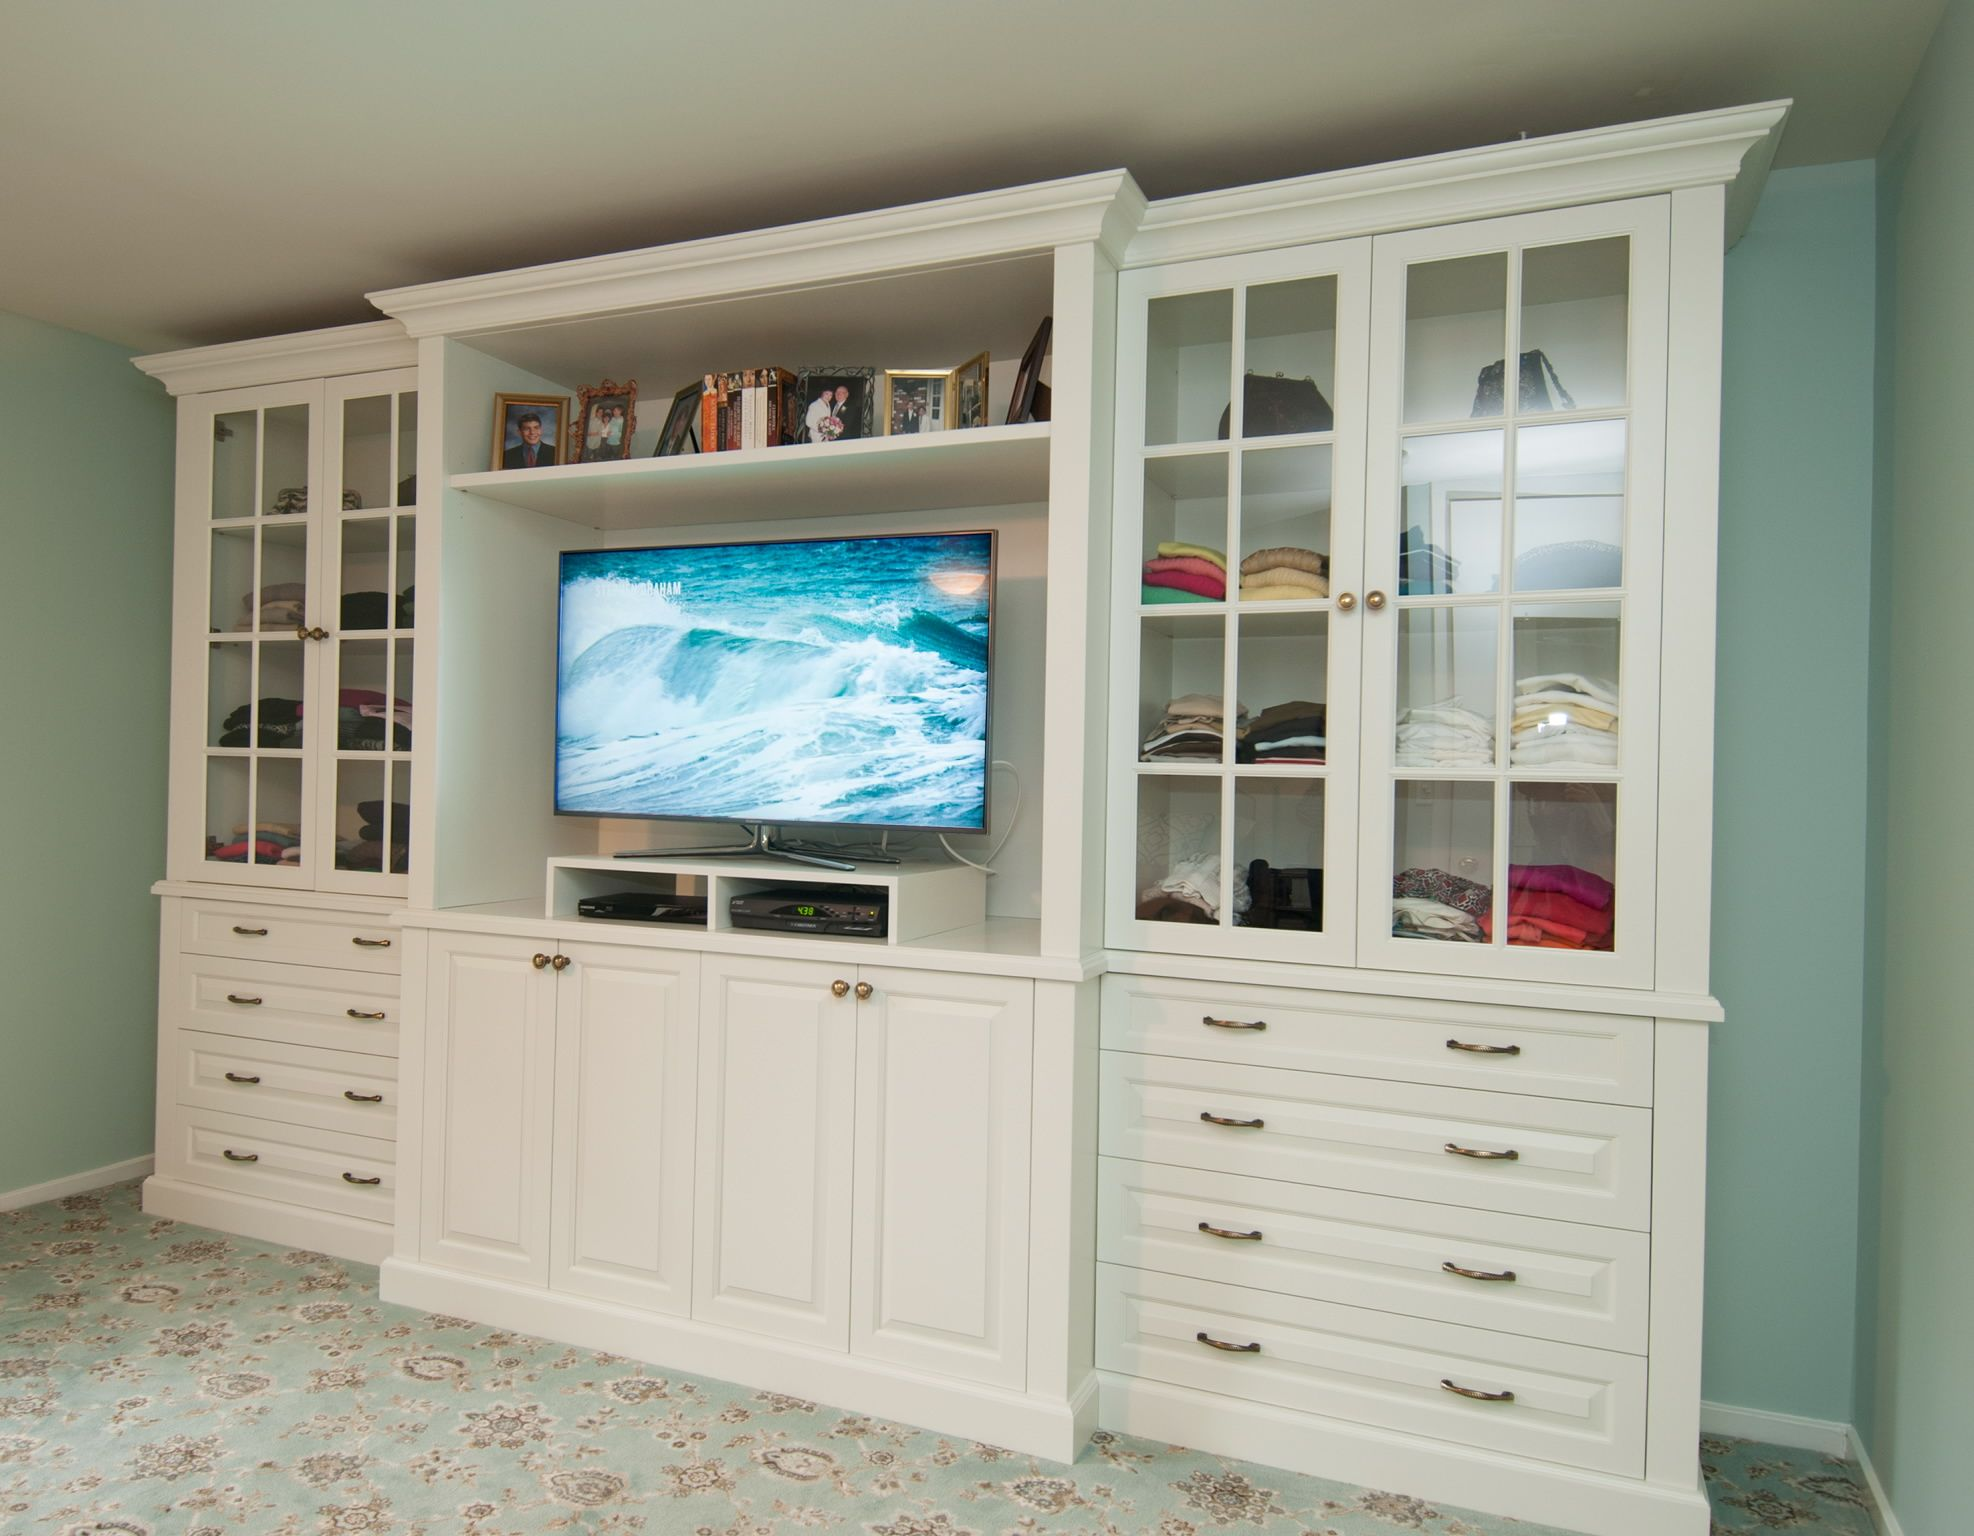 bedroom tv stand dresser. TV stand  dresser and display shelves combination creates elegant built in style efficiency